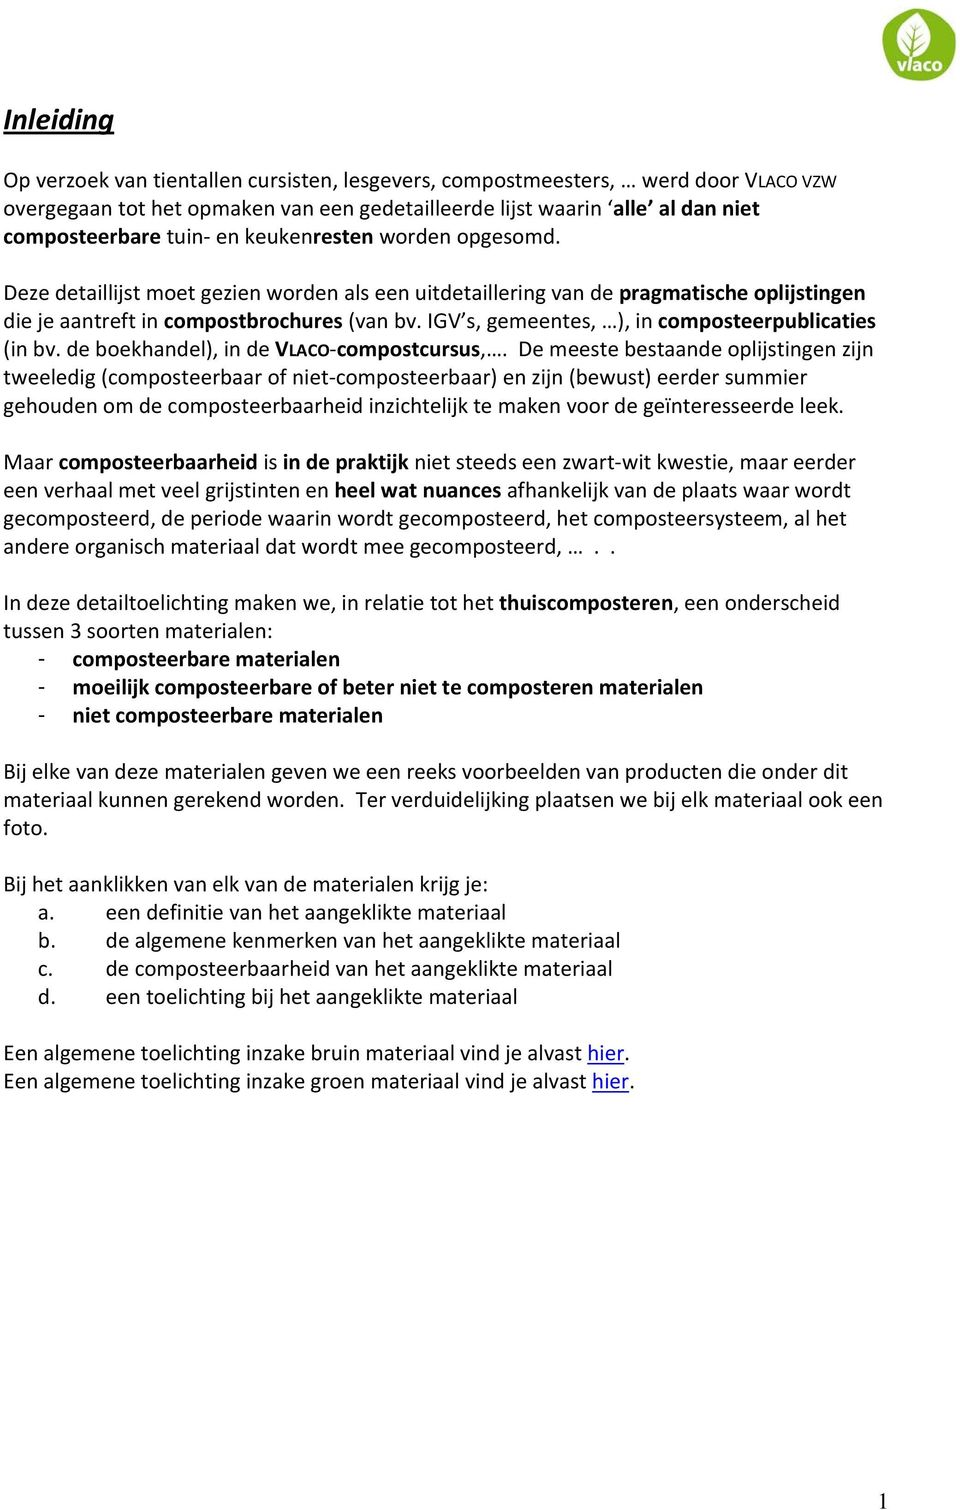 IGV s, gemeentes, ), in composteerpublicaties (in bv. de boekhandel), in de VLACO-compostcursus,.